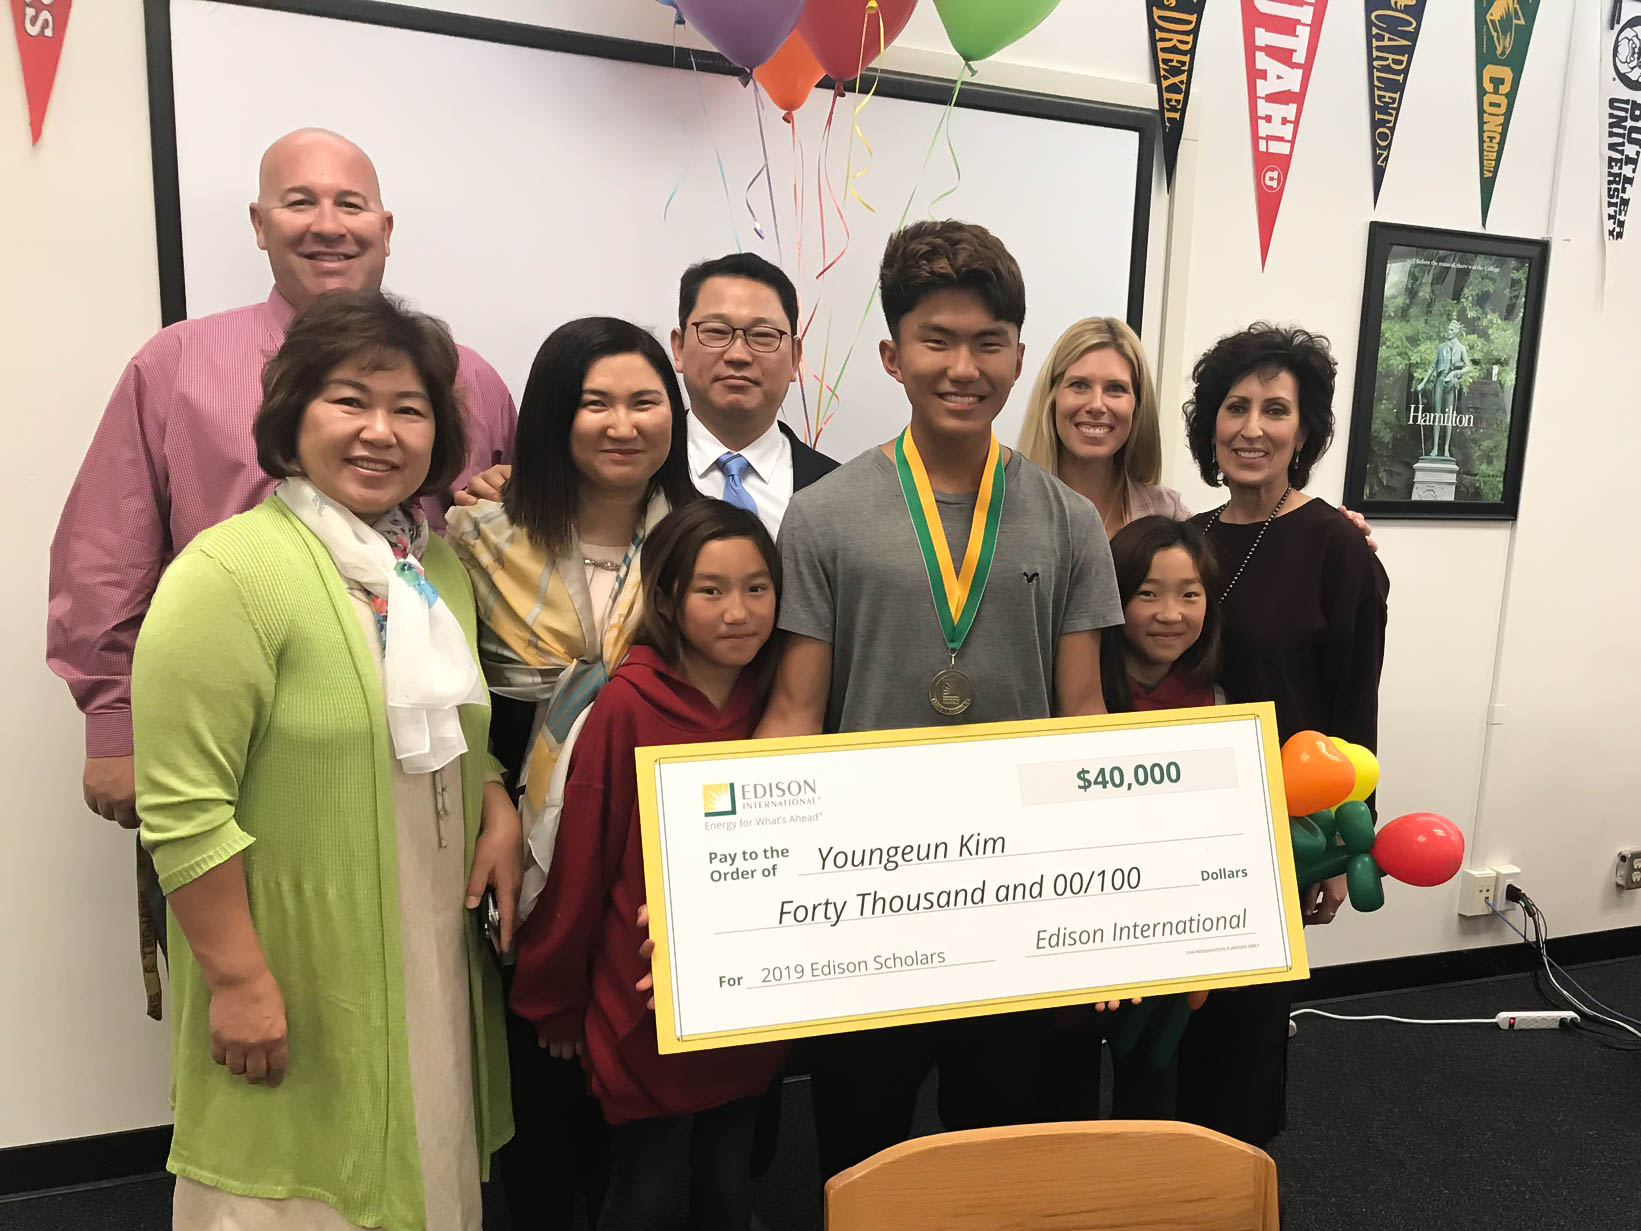 2019 Edison Scholar Youngeun Kim at Palos Verdes High School